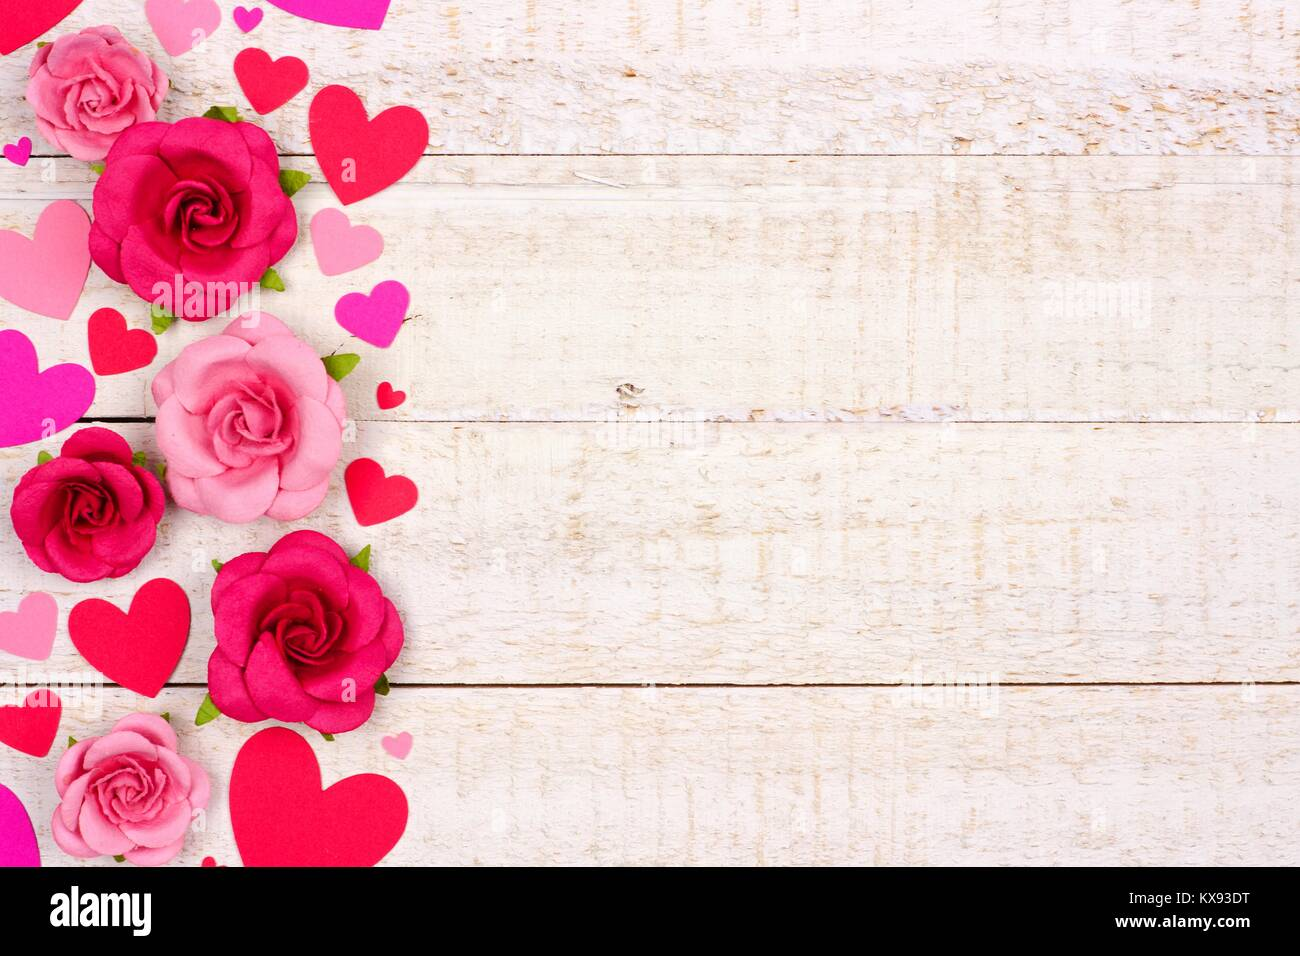 2019 year for lady- Roses pink and hearts